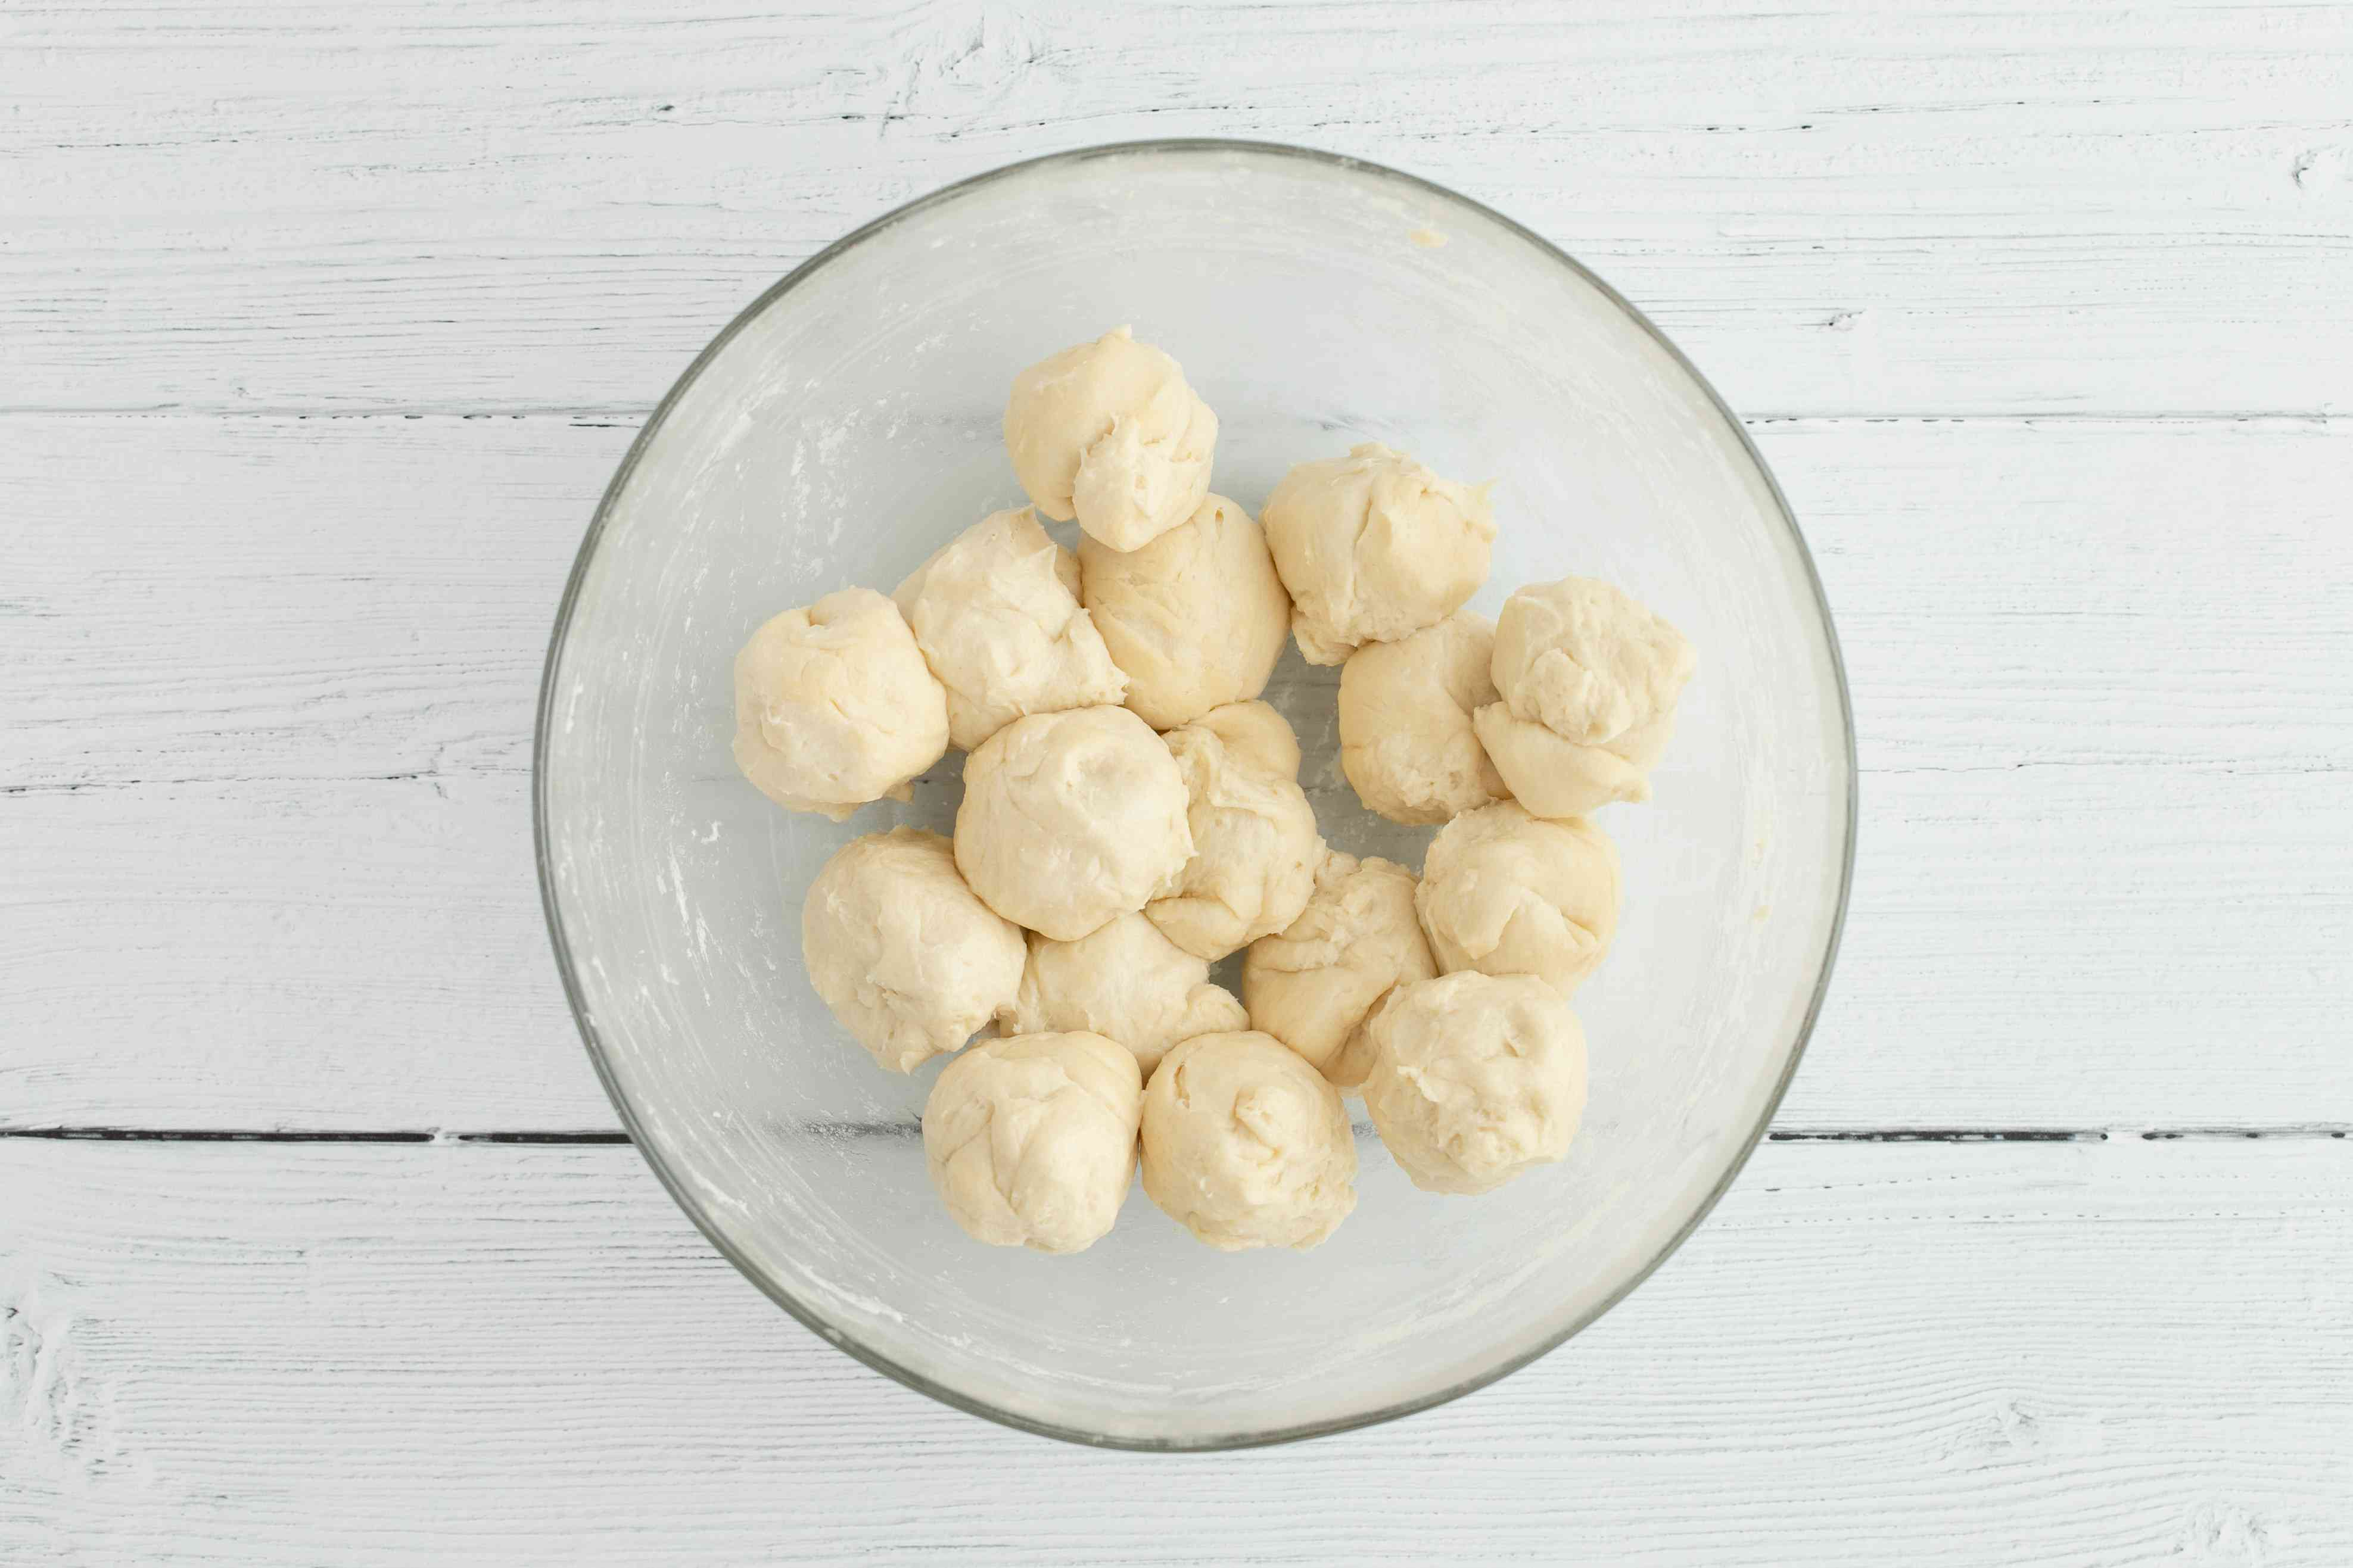 Pastry dough divided into pieces in a bowl